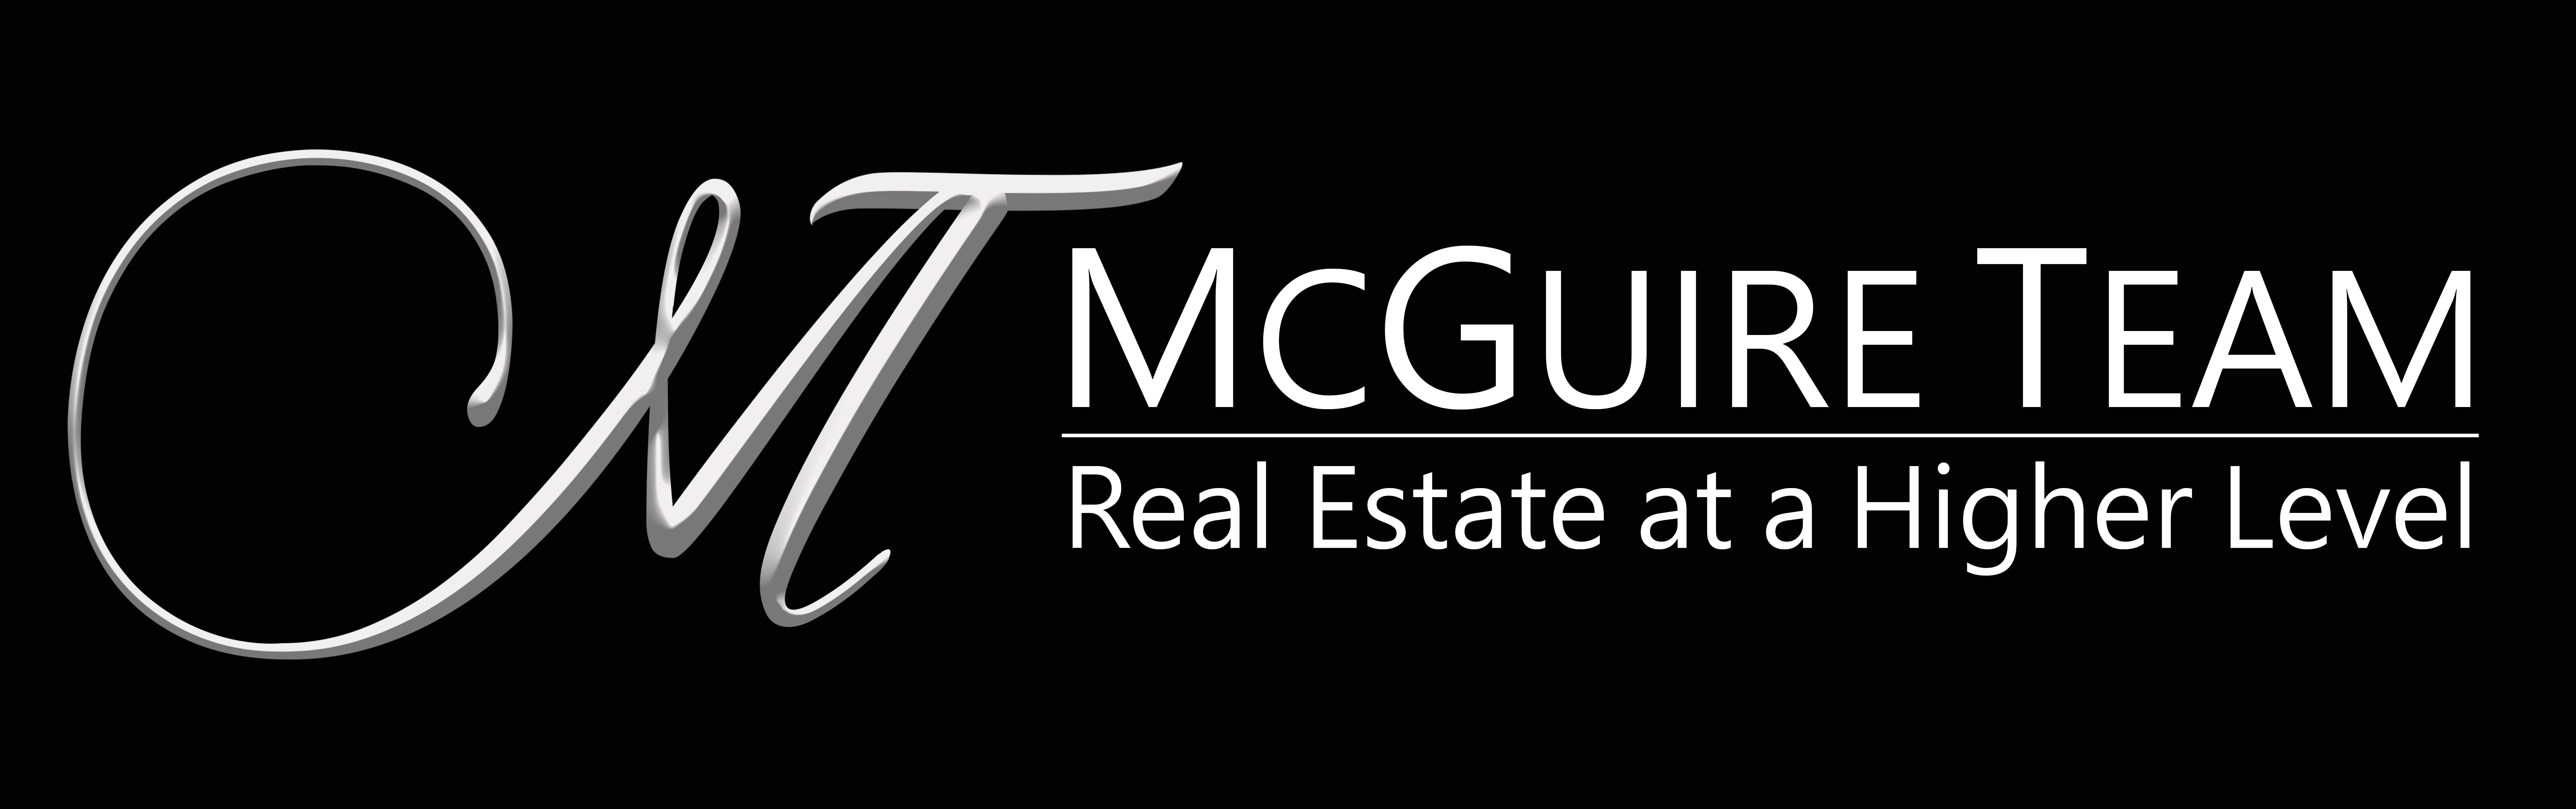 The McGuire Team logo